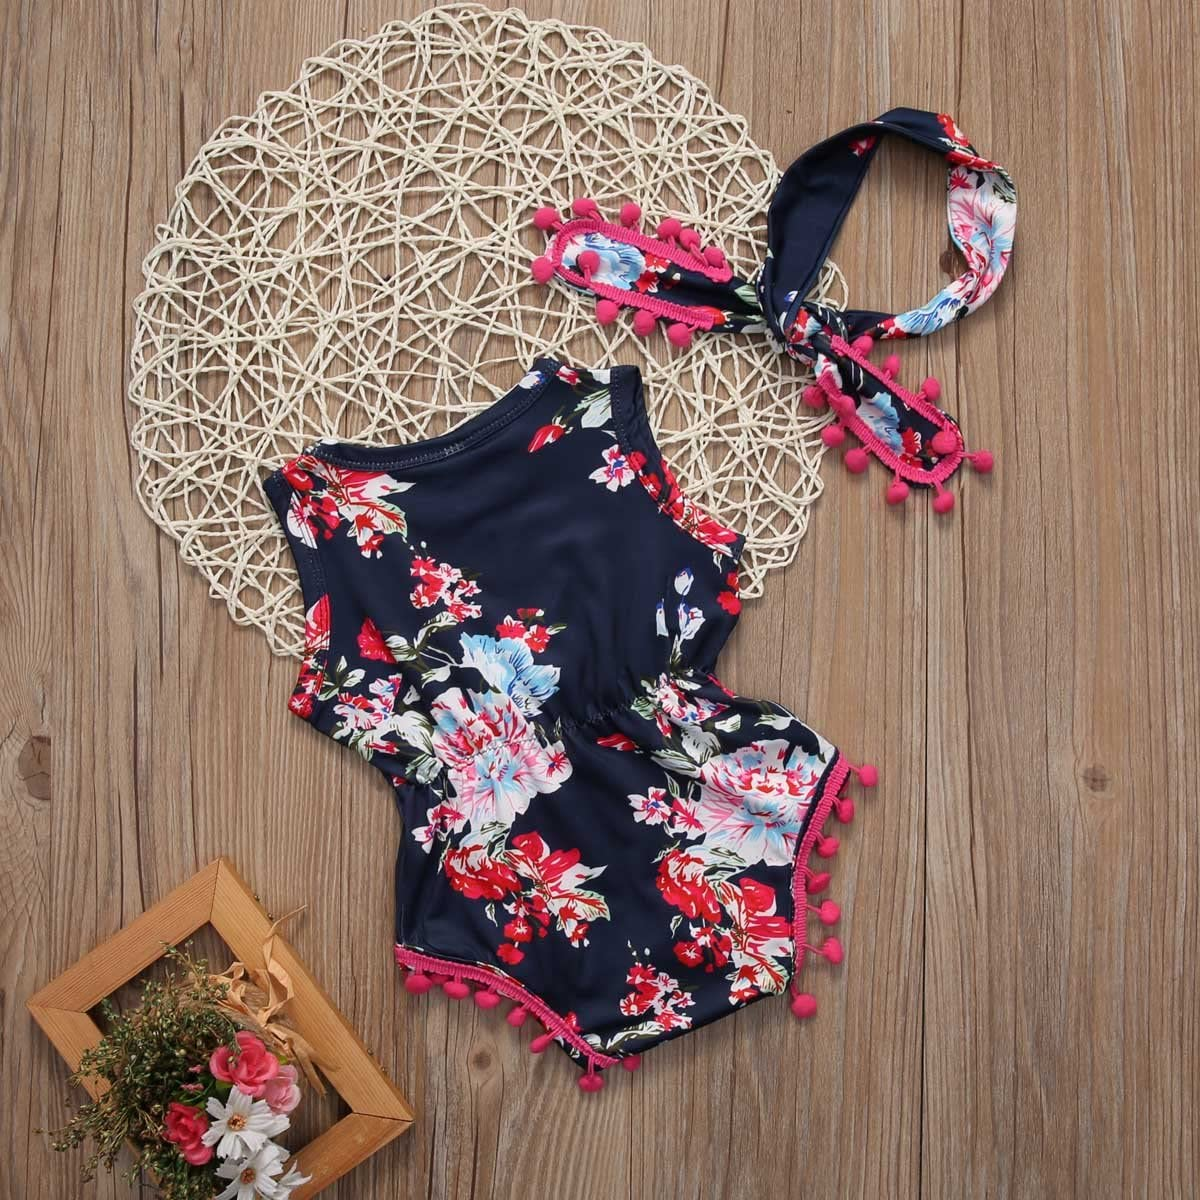 Headband Baby-Girls Floral Outfit Romper Clothes Sleeveless Tassel Bodysuit